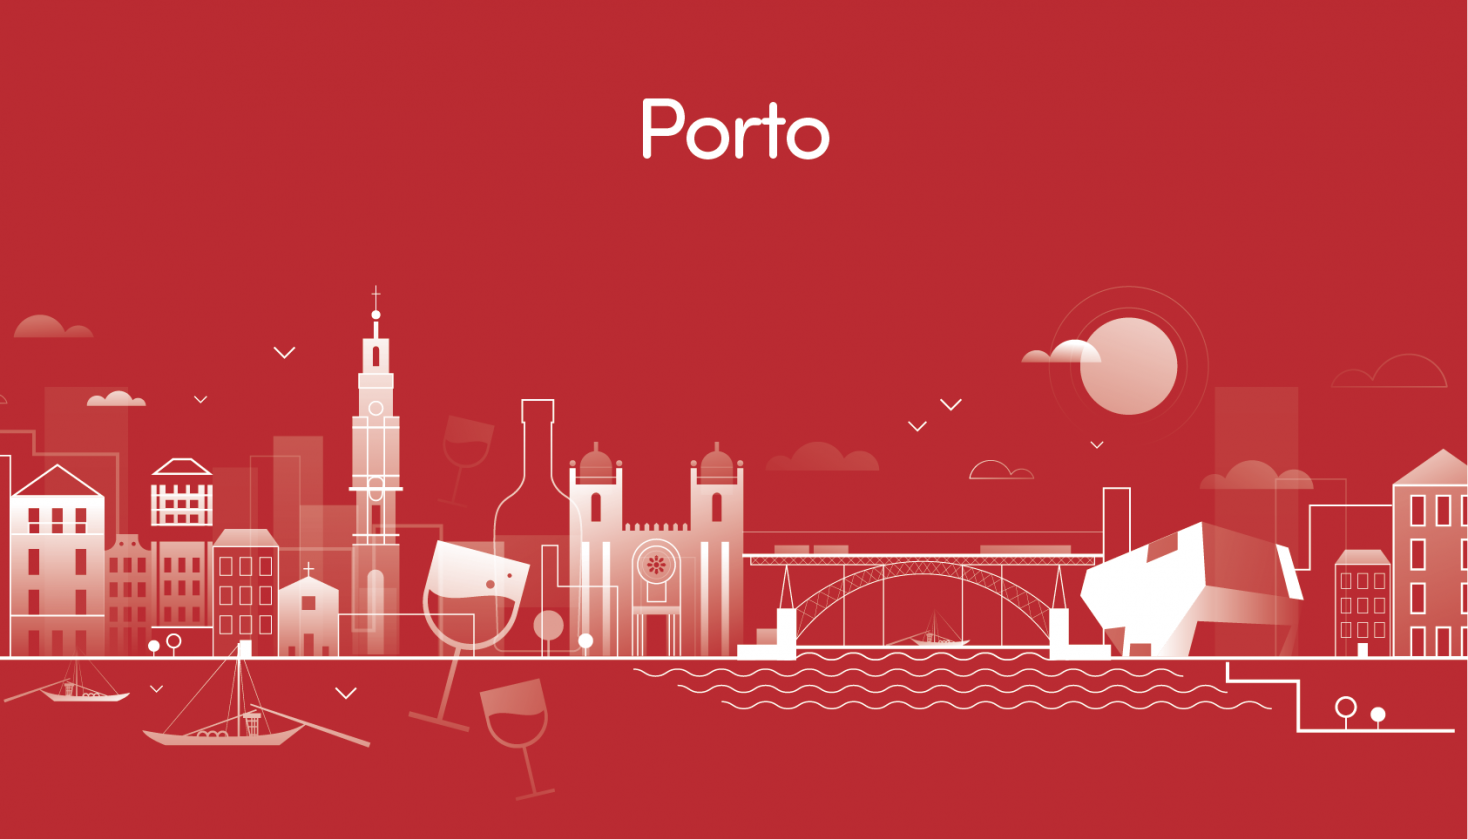 Porto City illustration from animation